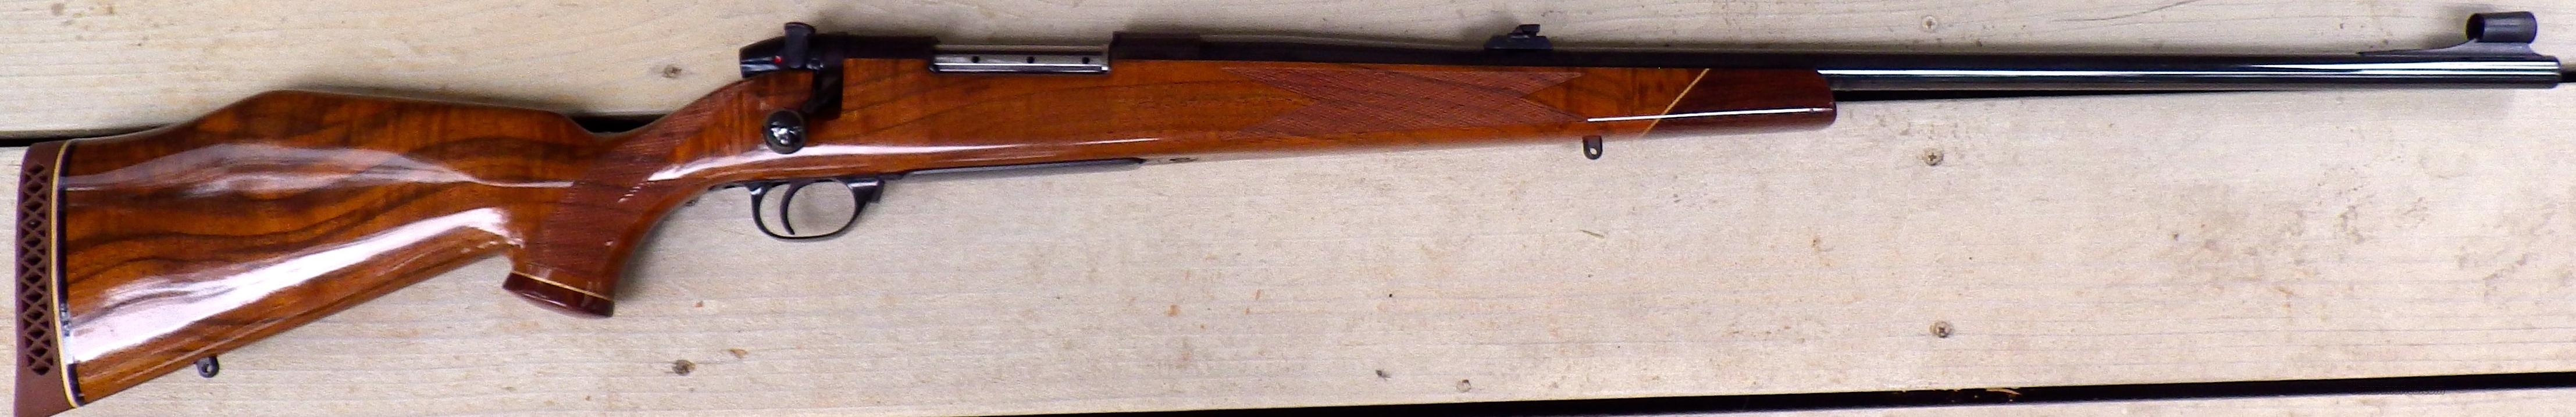 Weatherby Mark V Deluxe .378 Wby. Mag.  Guns > Rifles > Weatherby Rifles > Sporting